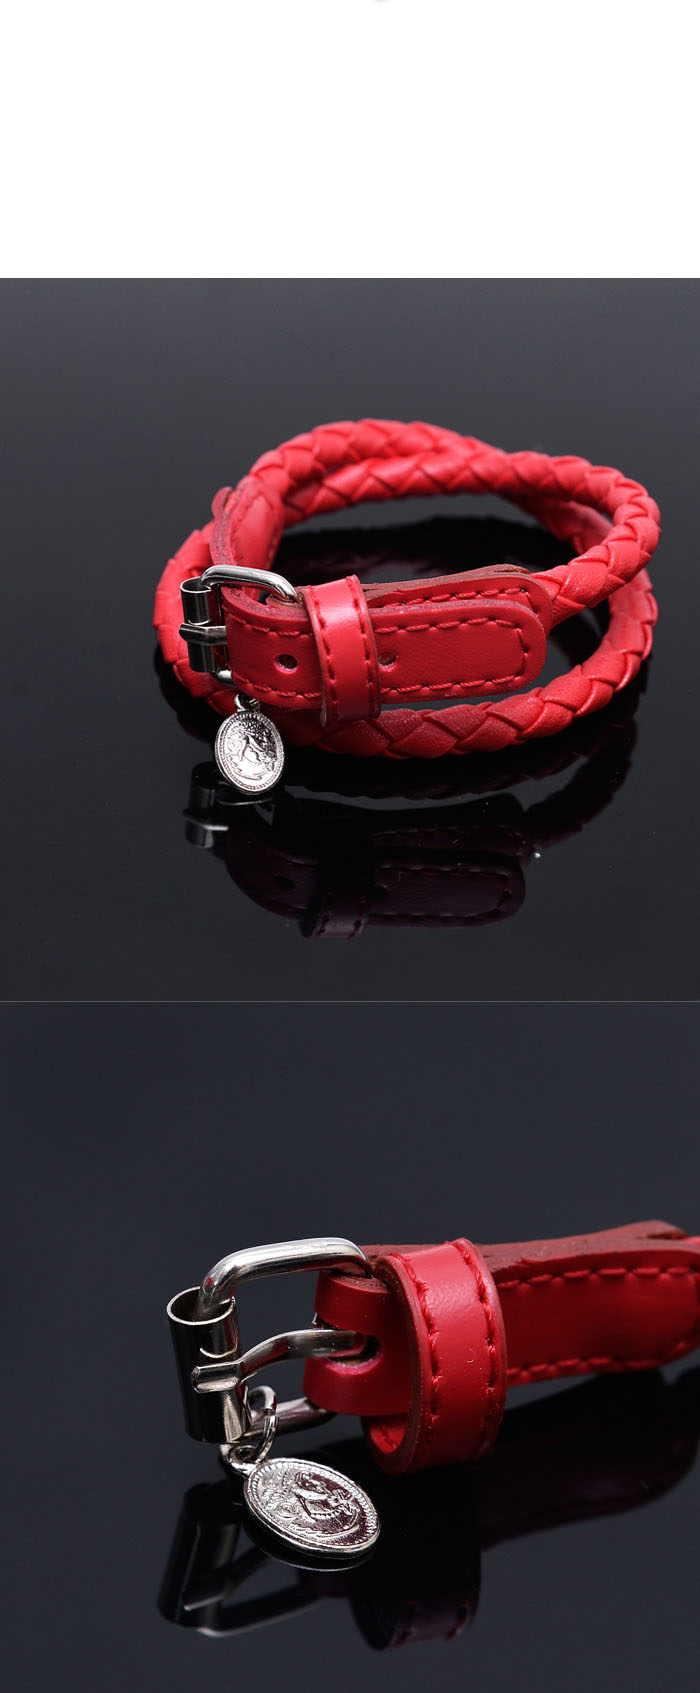 Accessories Bracelets Double Coil Leather Braided